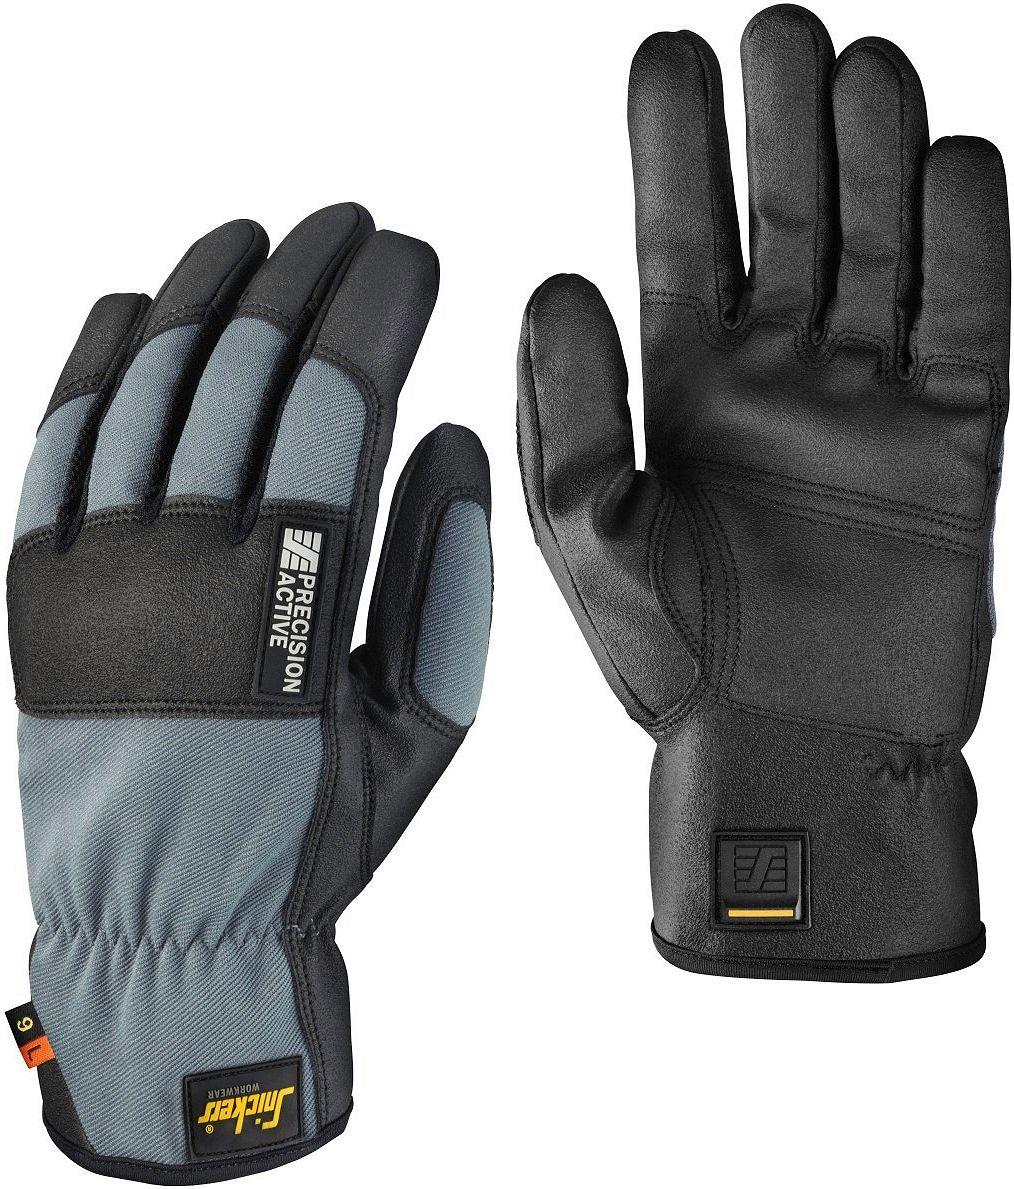 GANTS SNICKERS PRECISION ACTIVE D T9